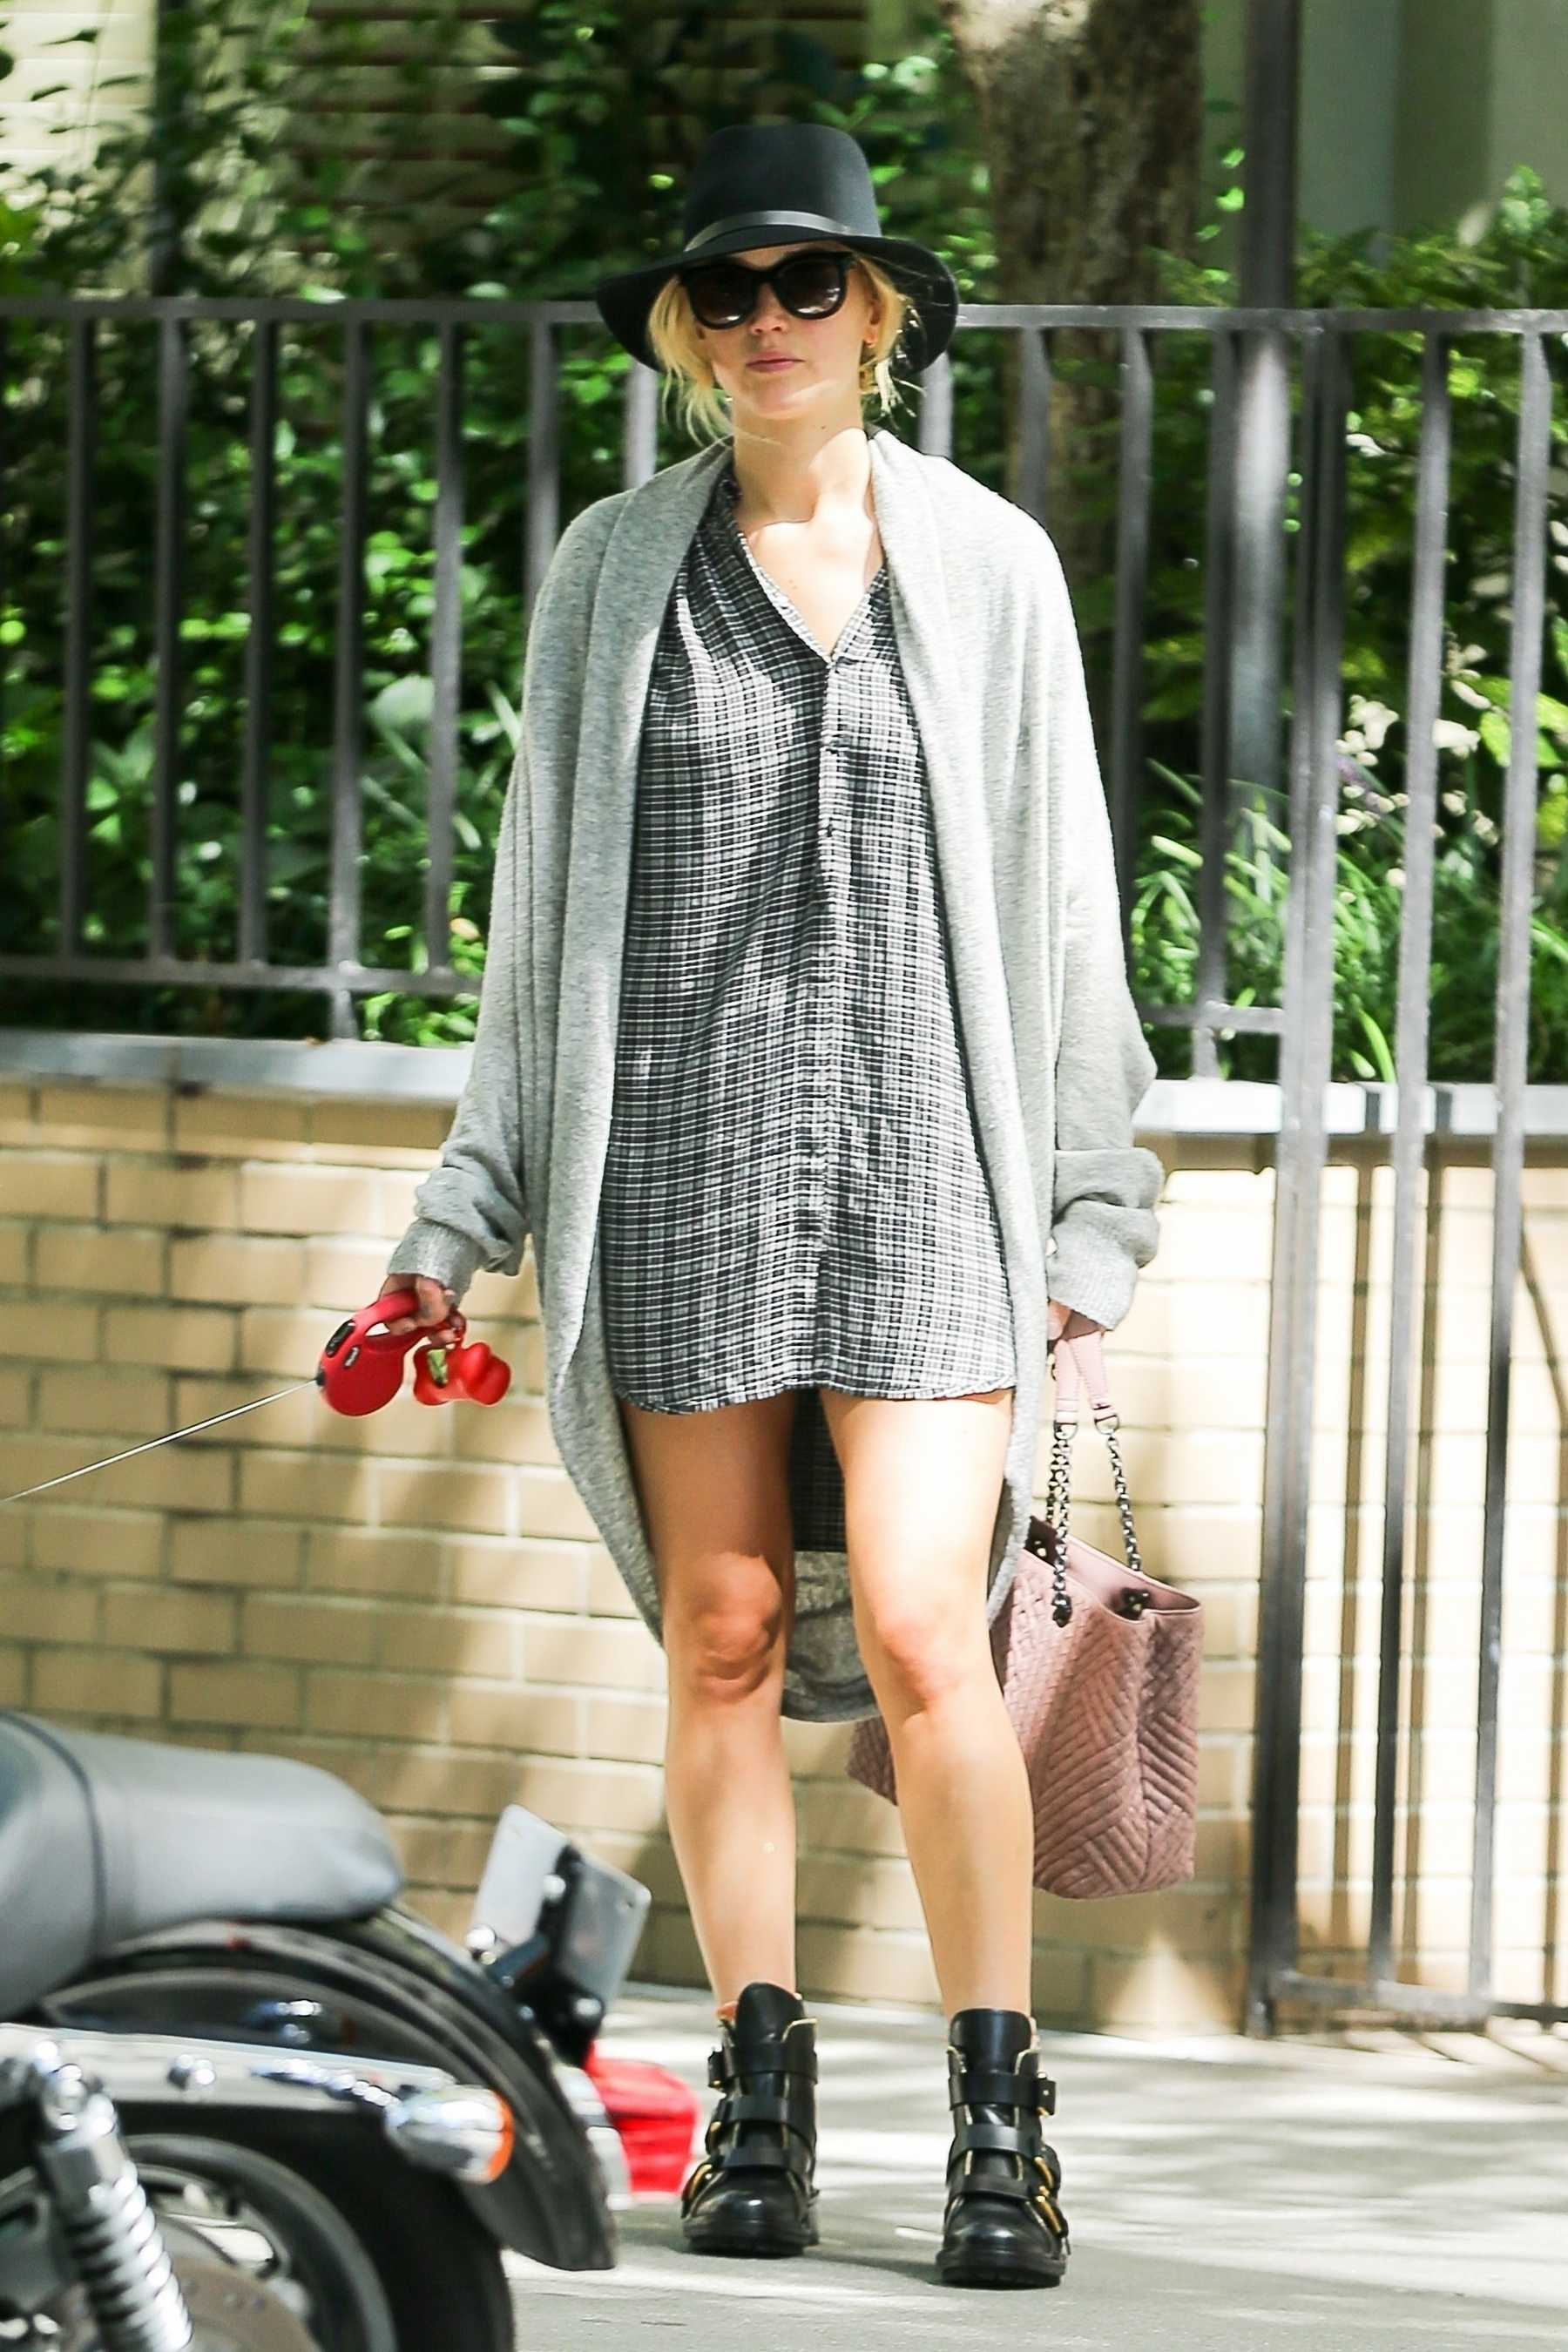 http://jenniferlawrencedaily.com/gallery/albums/userpics/10001/Jennifer_Lawrence_-_Goes_for_a_stroll_with_her_dog_Pippi_in_NYC_on_September_1-06.jpg